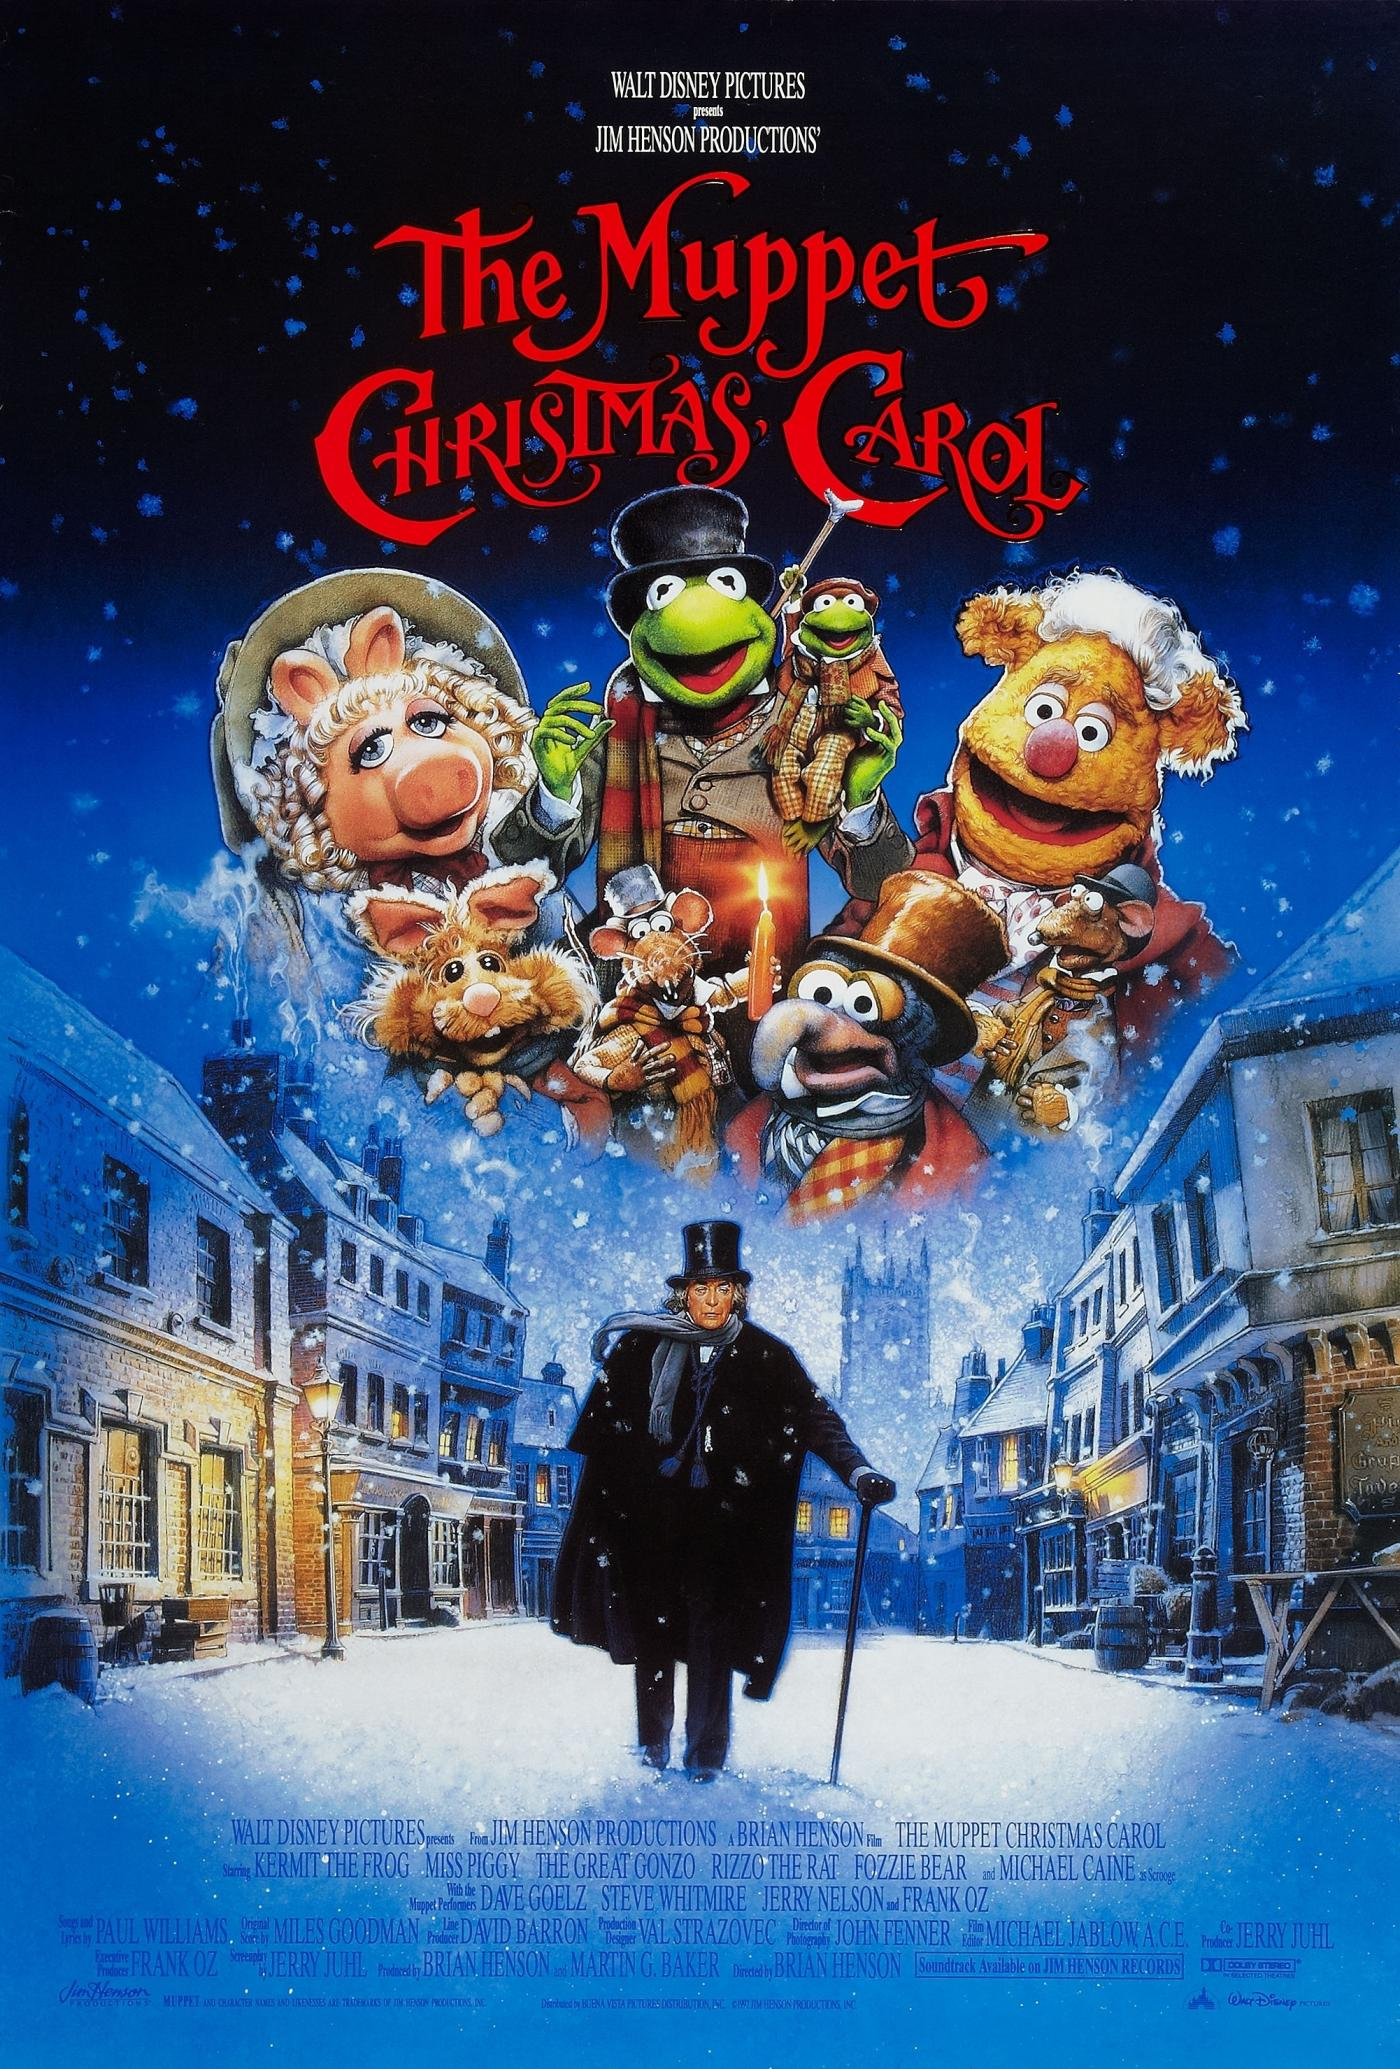 The film poster for the Muppets Christmas Carol